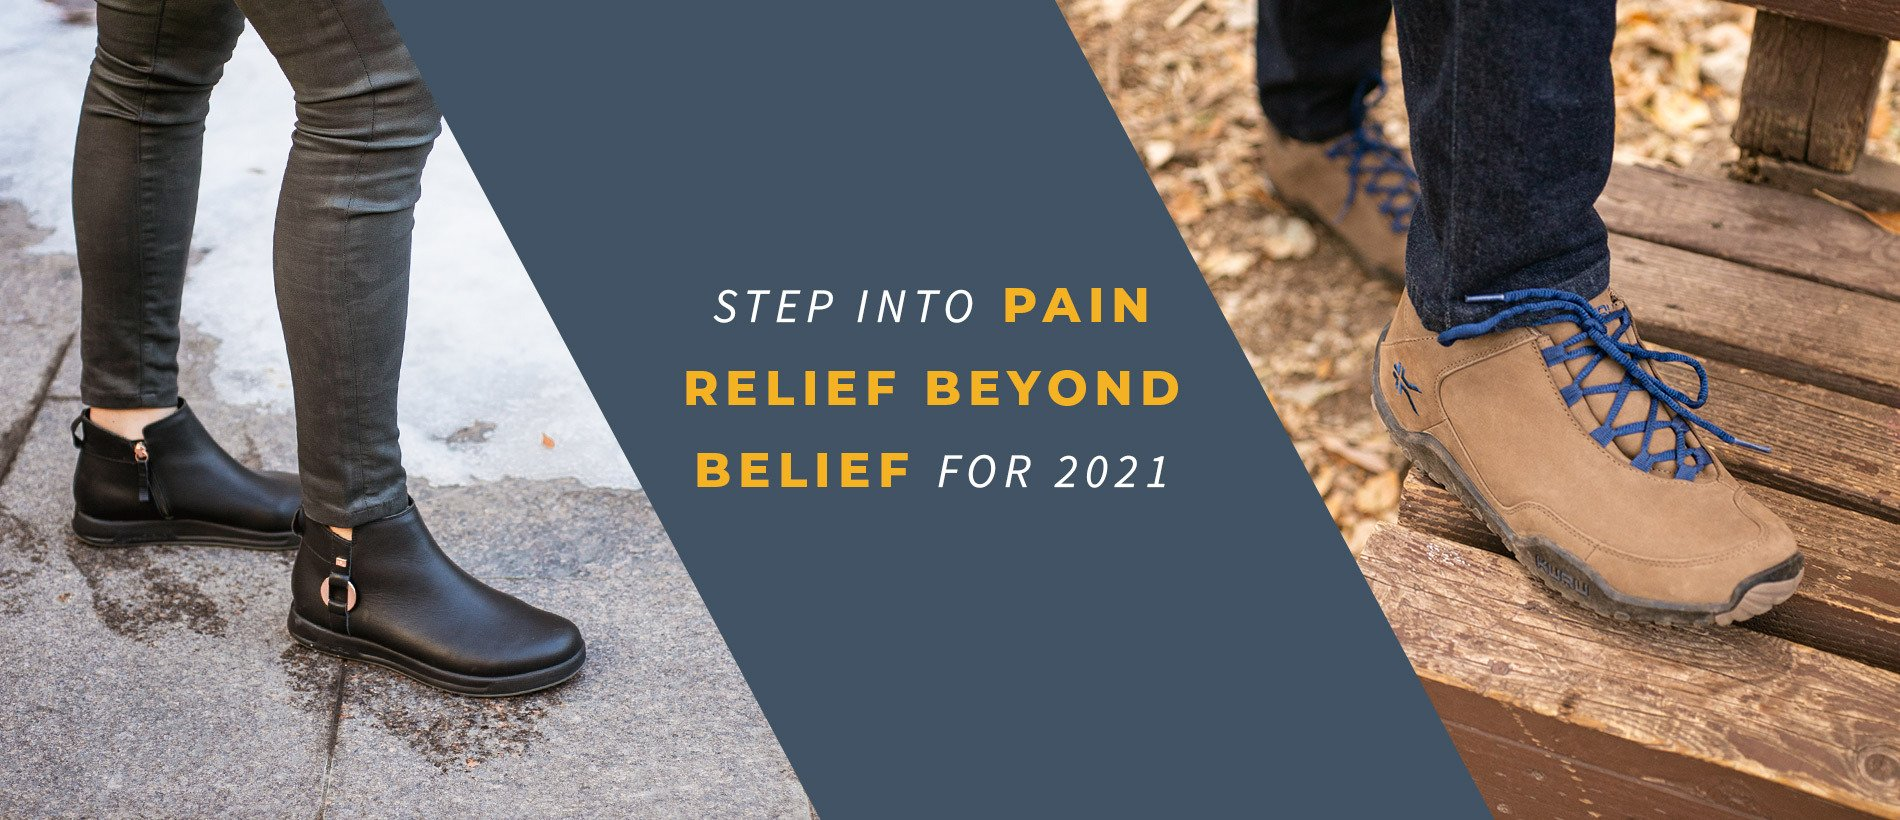 Step into Pain Relief Beyond Belief for 2021